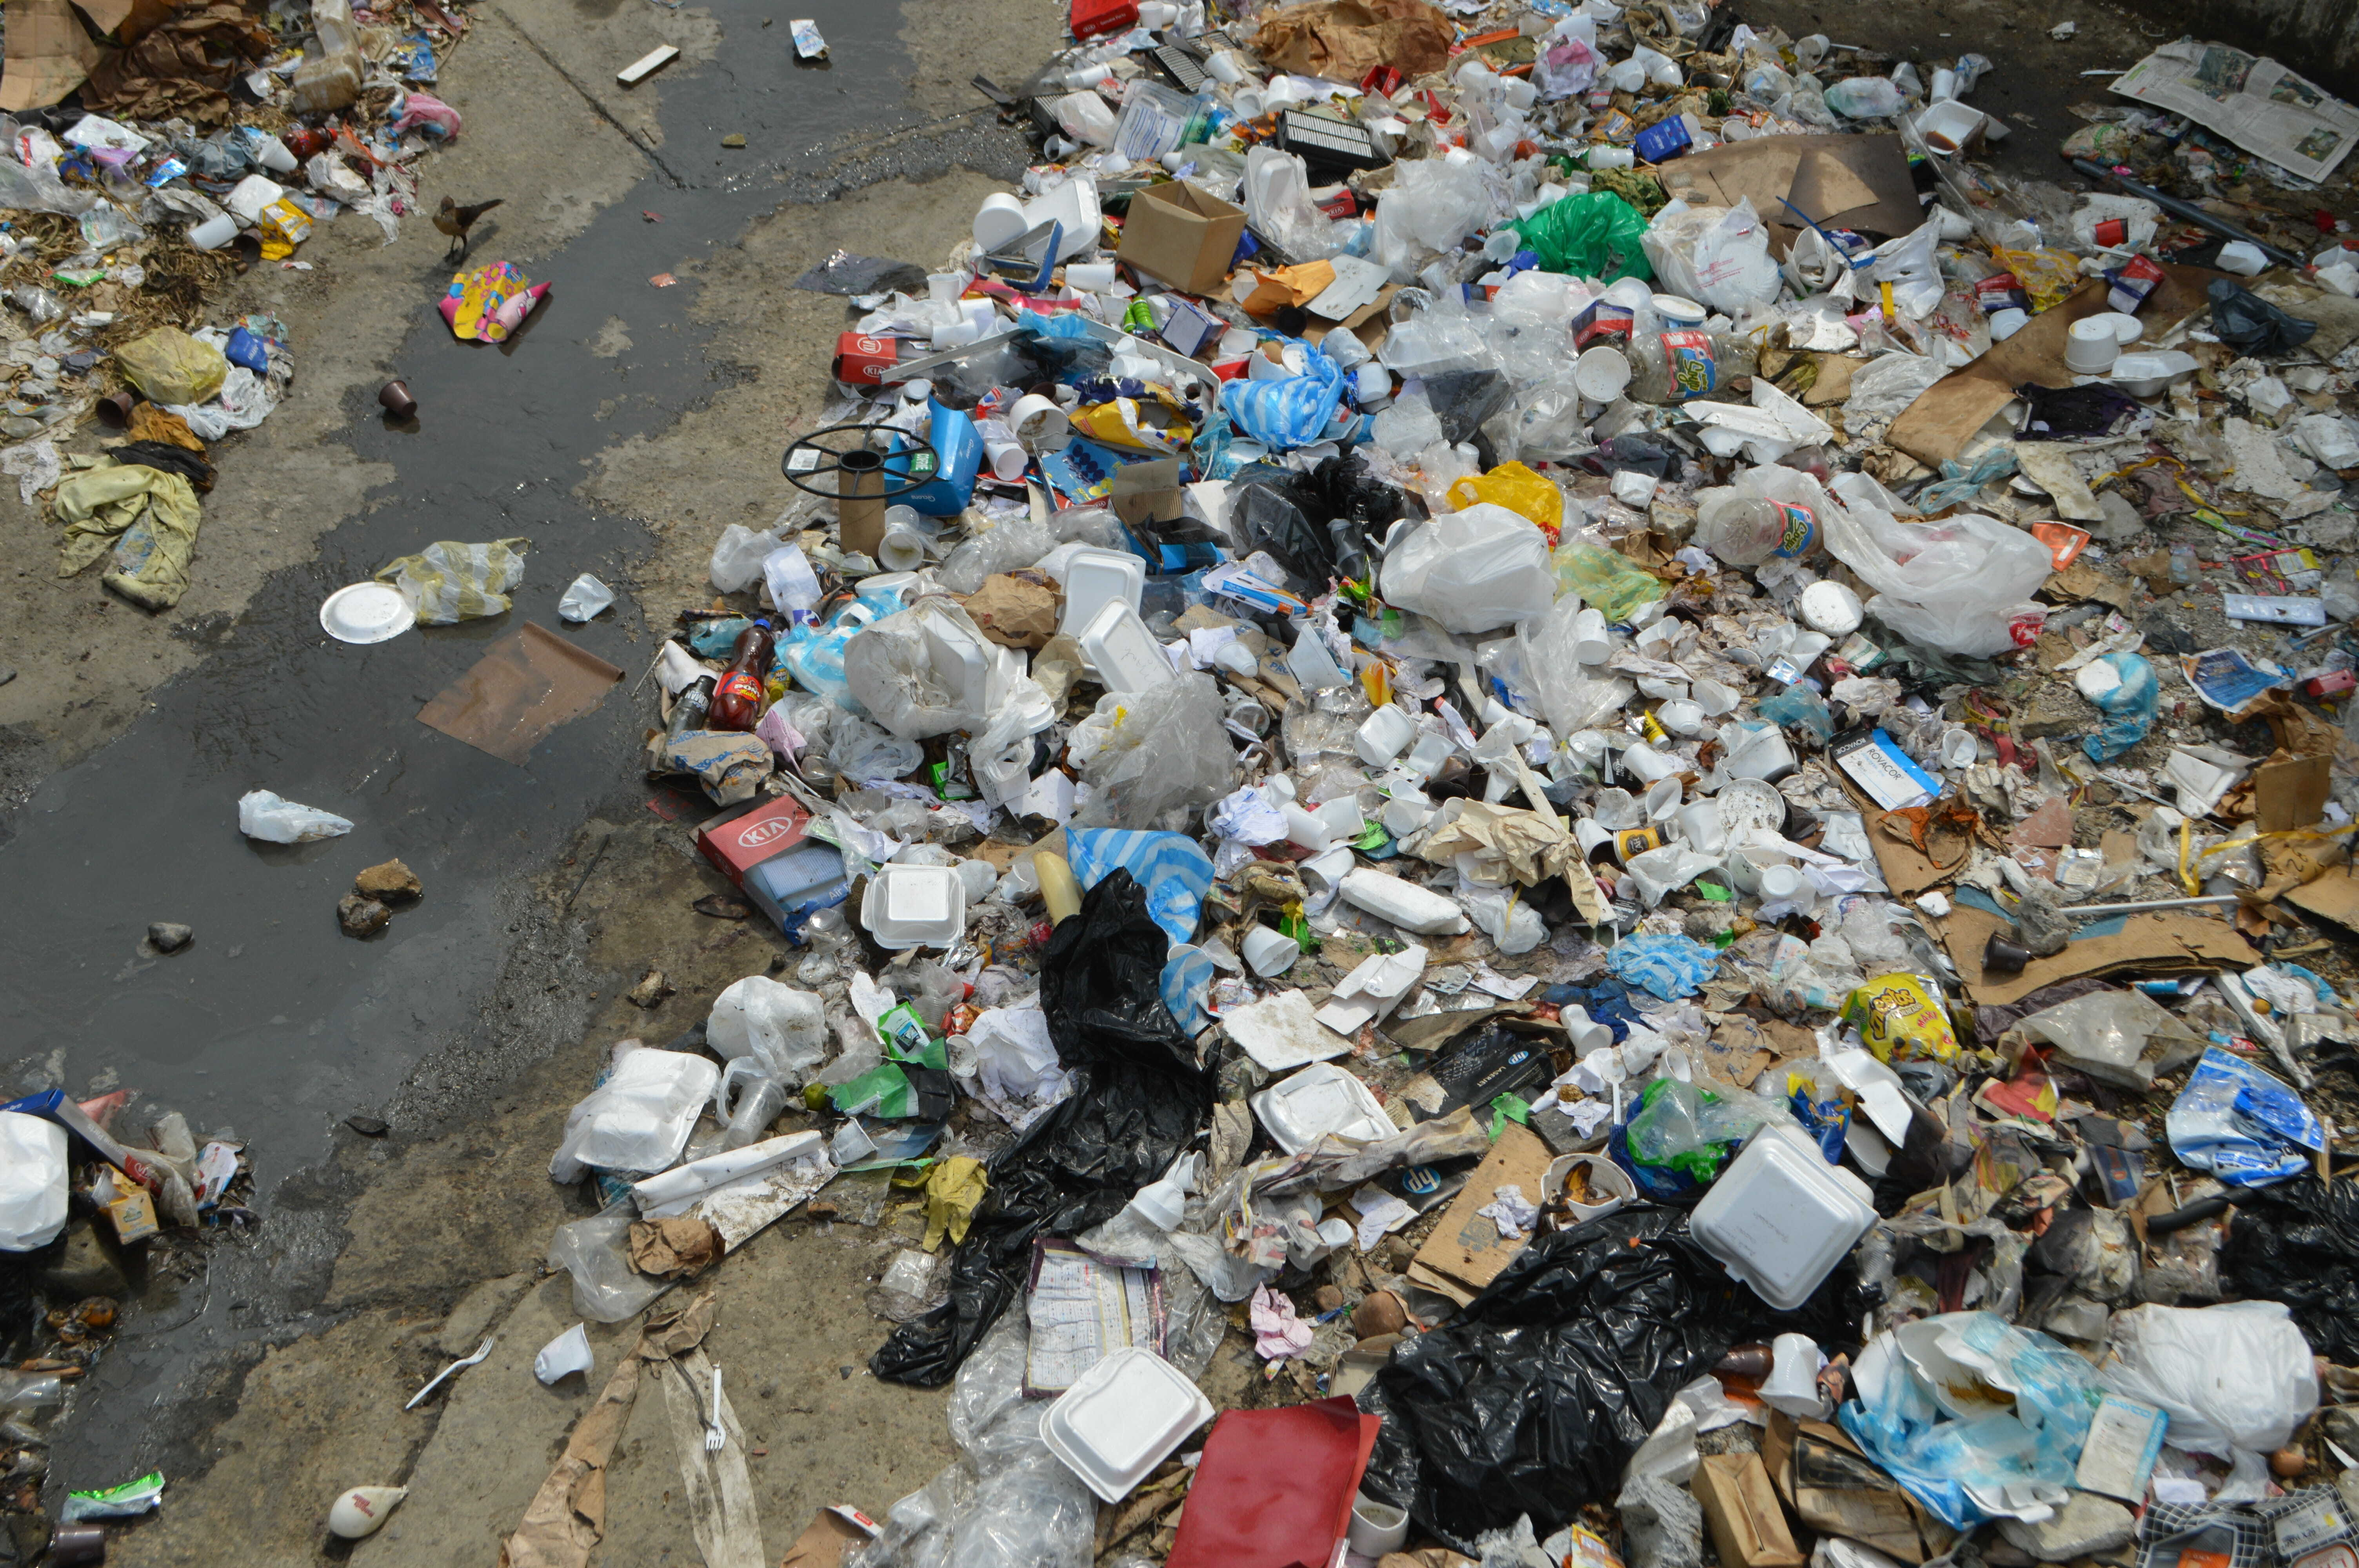 Food and goods-packaging recycle rate 100% - what it takes to avoid plastic all over nature